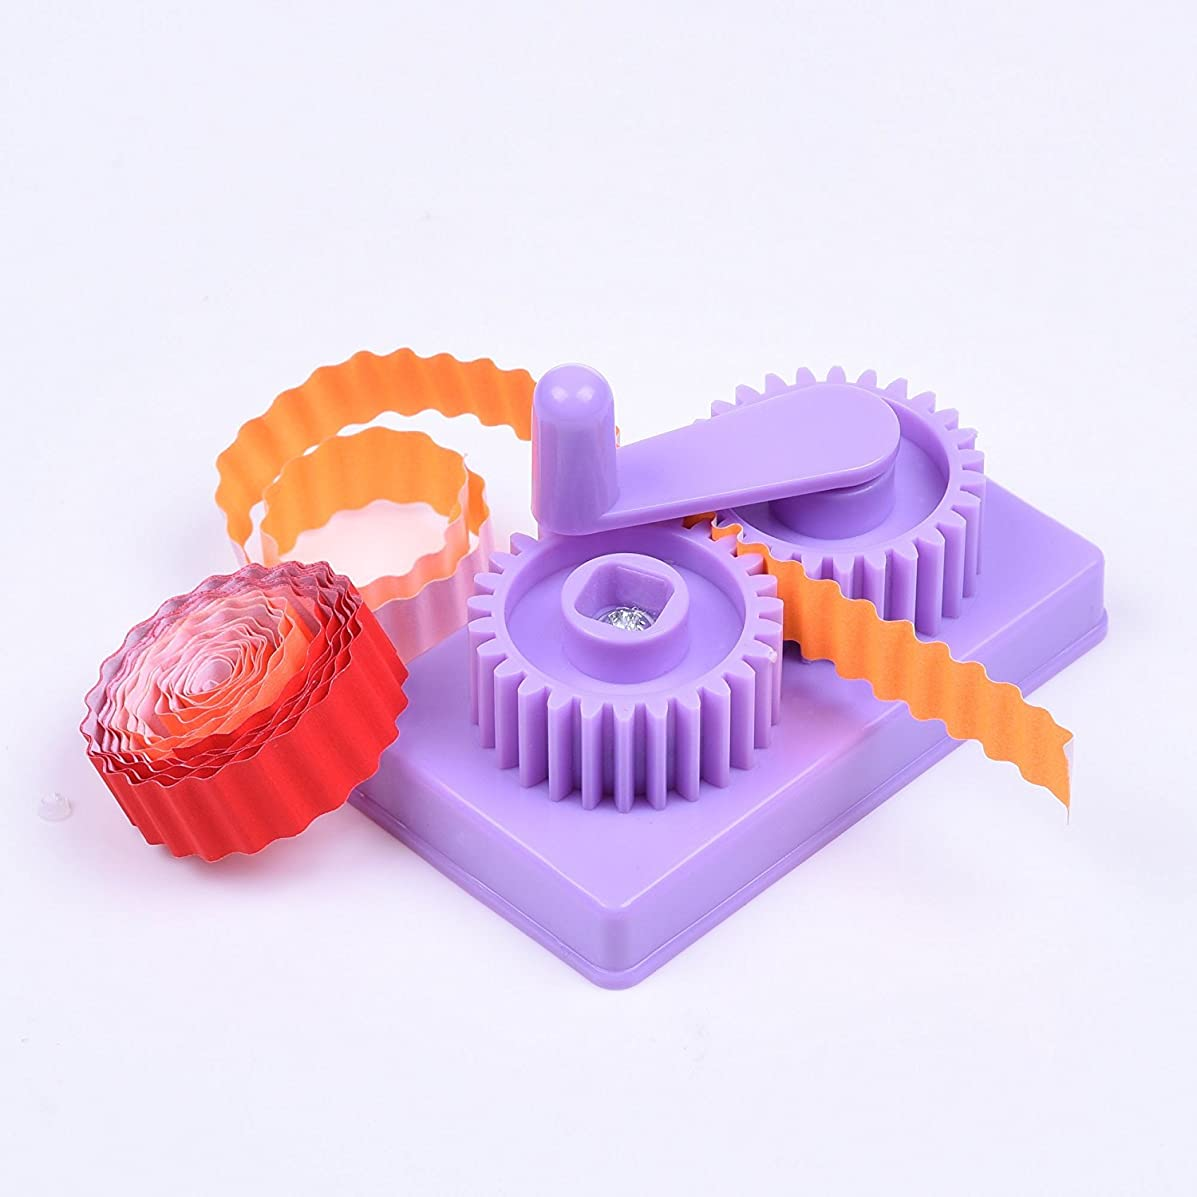 LUTIONS Purple Hand-operated Quilling Crimper, Paper Slip Wave Shape Making Tool DIY Making Tool, Quilling Tool with Little Storage Case